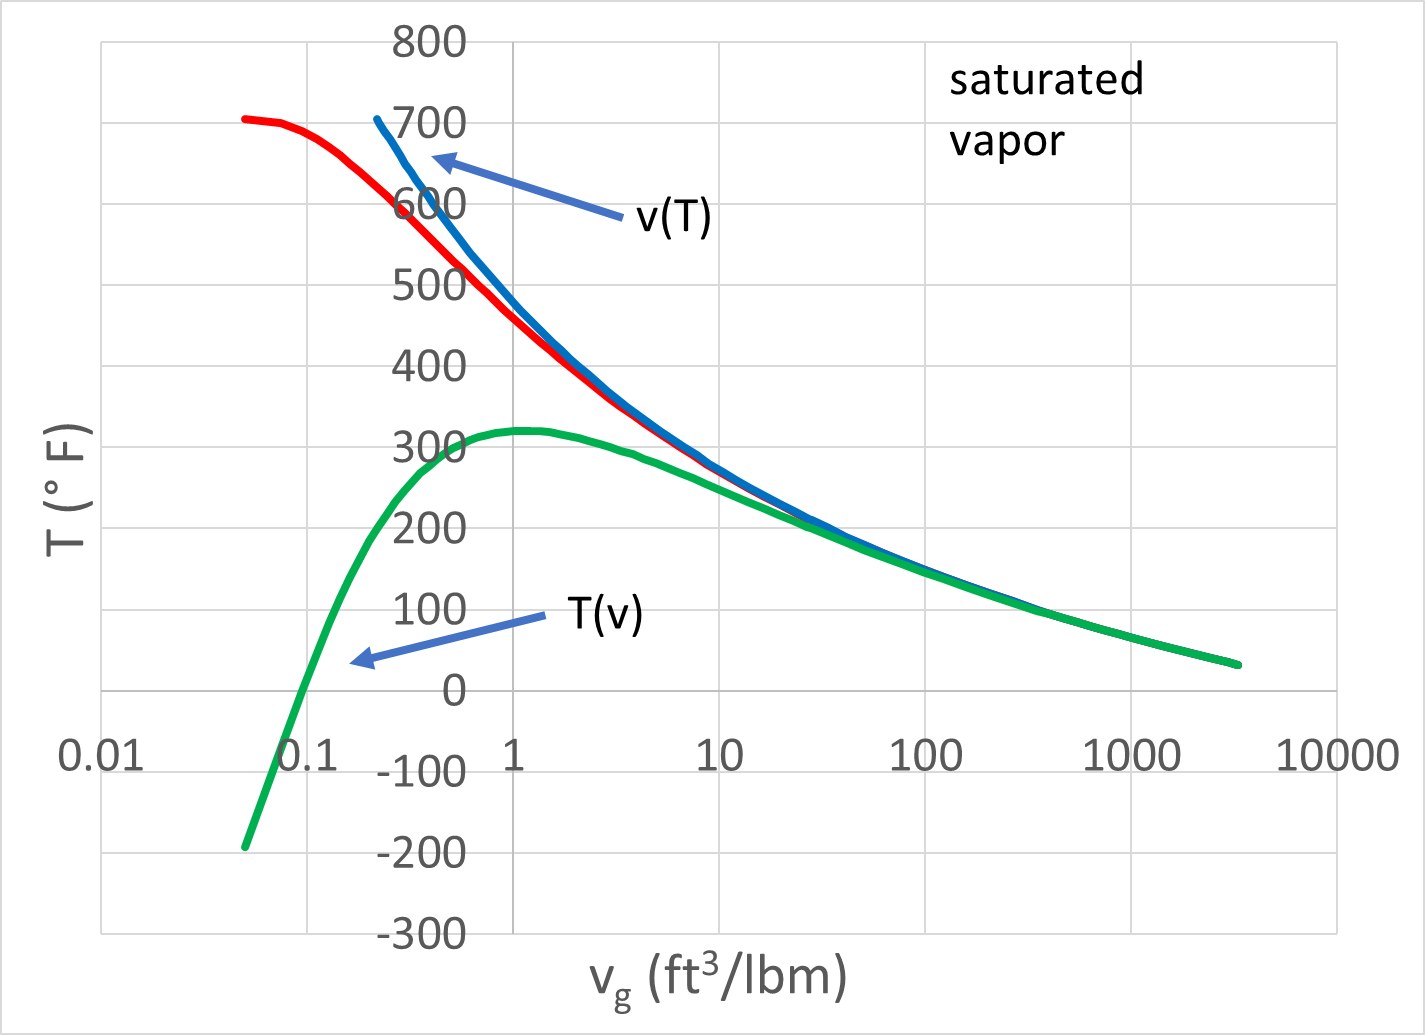 small resolution of the red line represents the saturated vapor line the right side of the steam dome the blue line represents the calculation of v from values for